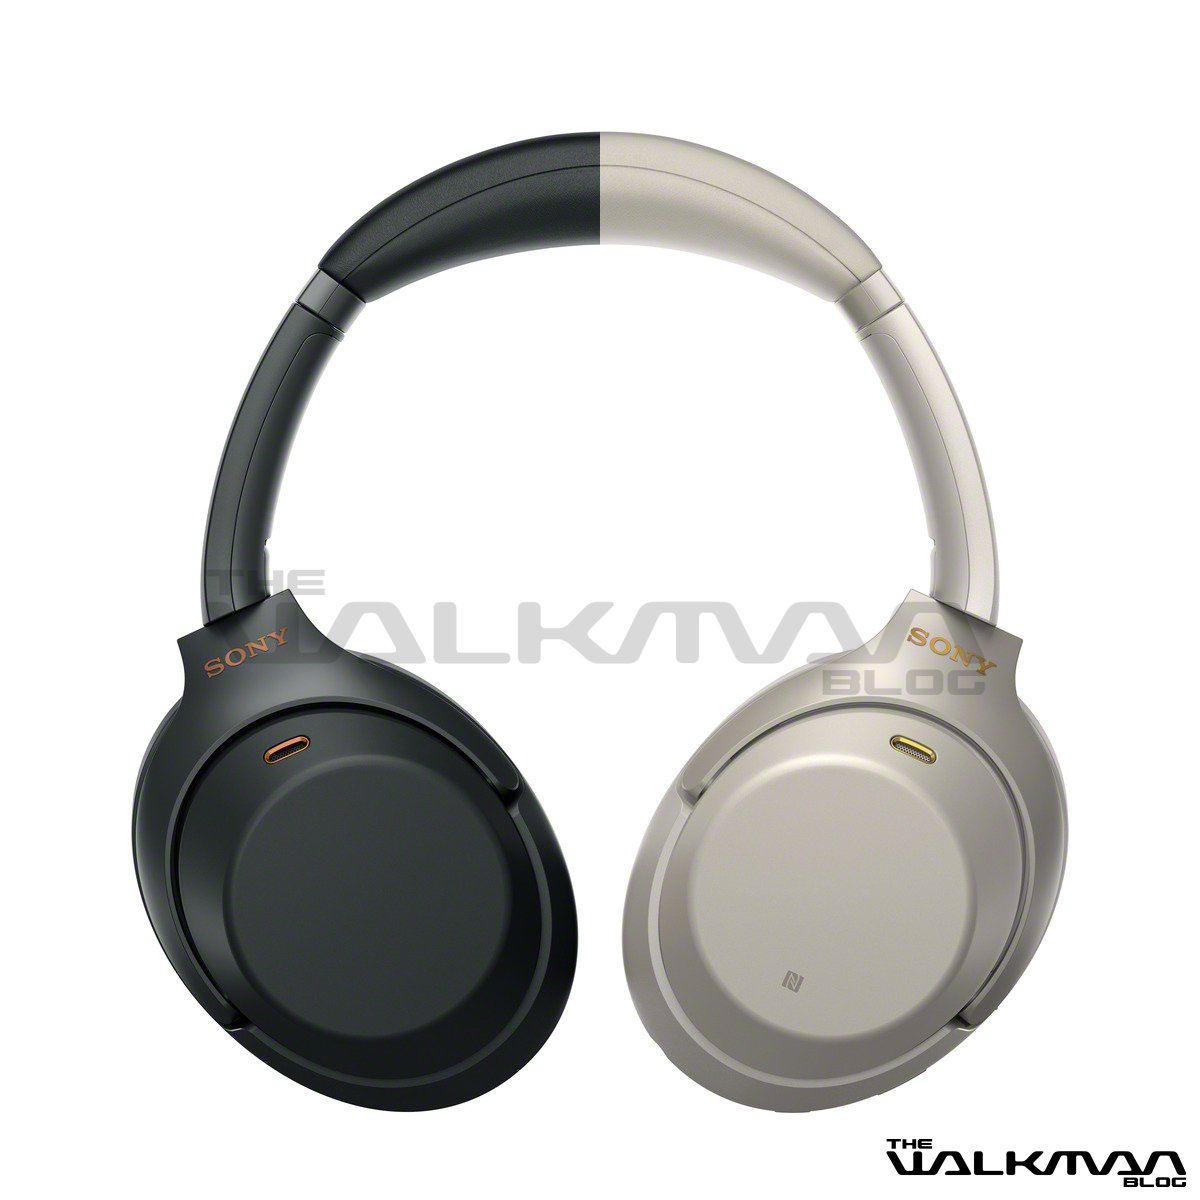 Sony Wh-1000xm3 Update